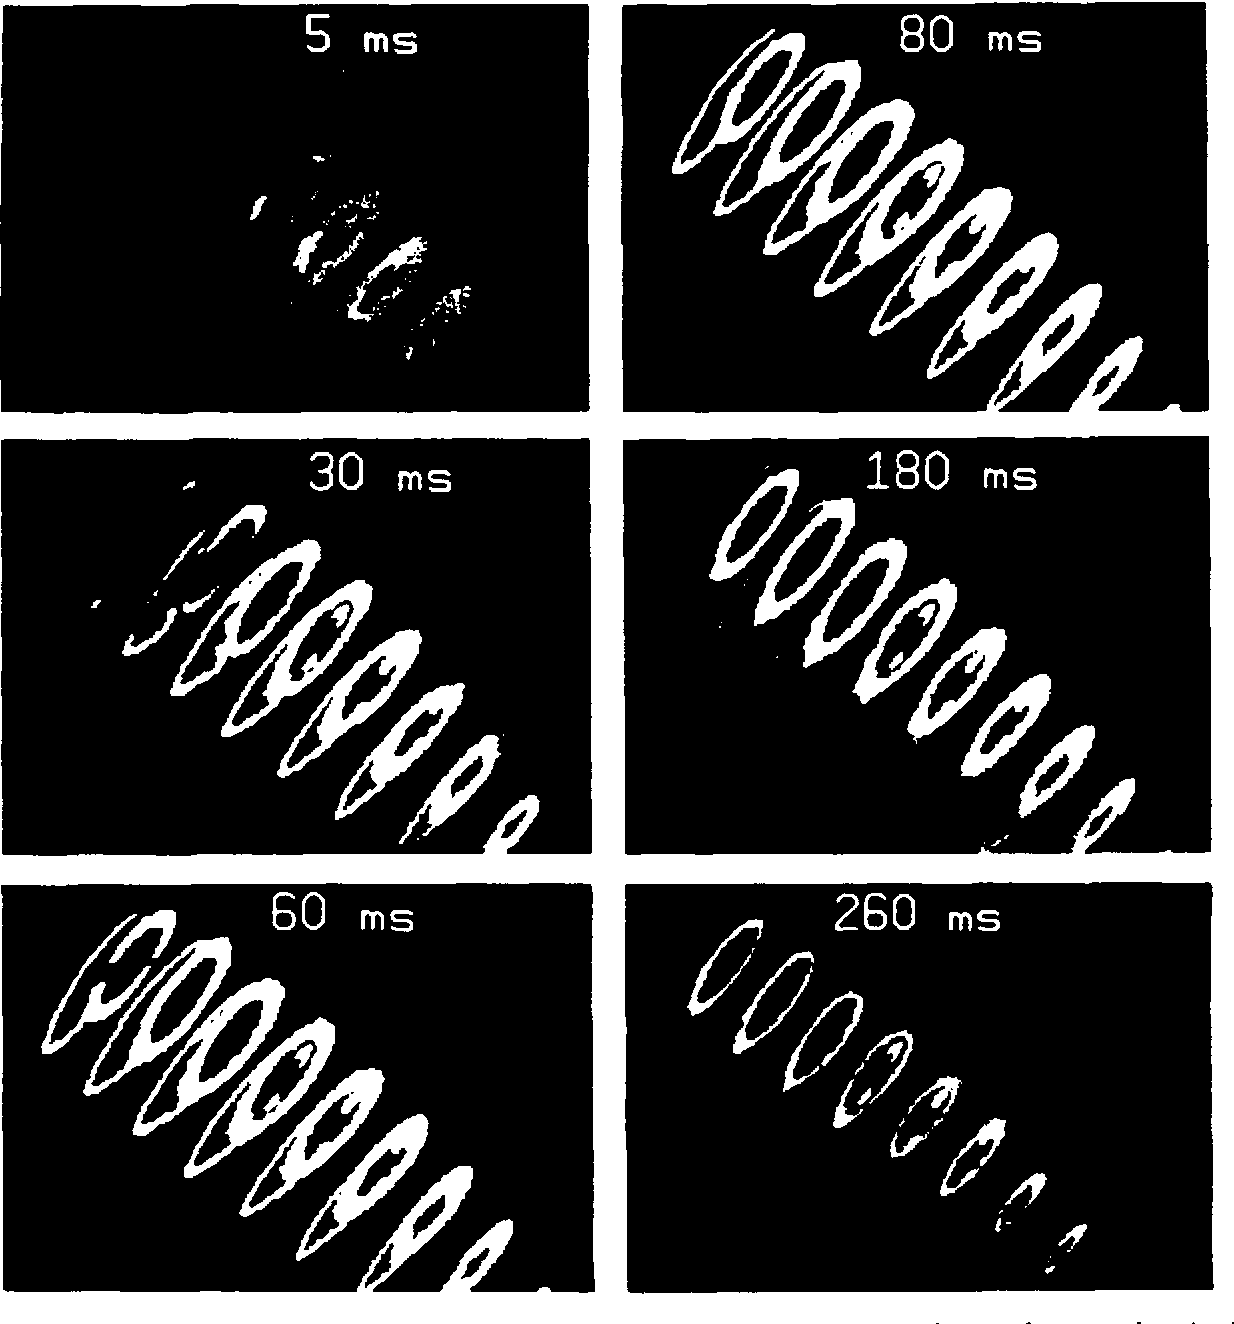 Fig. 3A. Black and white renditions of the colorgraphic output of the computer simulation of a normal excitation recovery sequence is presented here. The cross sections are selected from the complete set and are at 10 mm intervals. Each is at right angles to the long axis of the left ventricle. Thus each section as viewed from the anterior perspective reveals its underside (see Fig. 2 for orientation). Resting myocardium is dark on these sections. Excitation begins on the left septal surface in the mid portion near the junction with the apical third as shown and progresses rapidly to the endocardium of the left ventricle by 30 ms. It propagates from endocardium to epicardium. The active region at the excitation front is limited to about 3 mm. Recovery is a slower process and is more distributed. The myocardial action potential durations are adjusted in the simulation so that recovery procedes from epicardium to endocardium around the perimeter of the left ventricle. Recovery is just underway at 180 ms, has proceded to the midwall of the left ventricle by 260 ins, and is approaching the subendocardium, the last region to be repolarized.